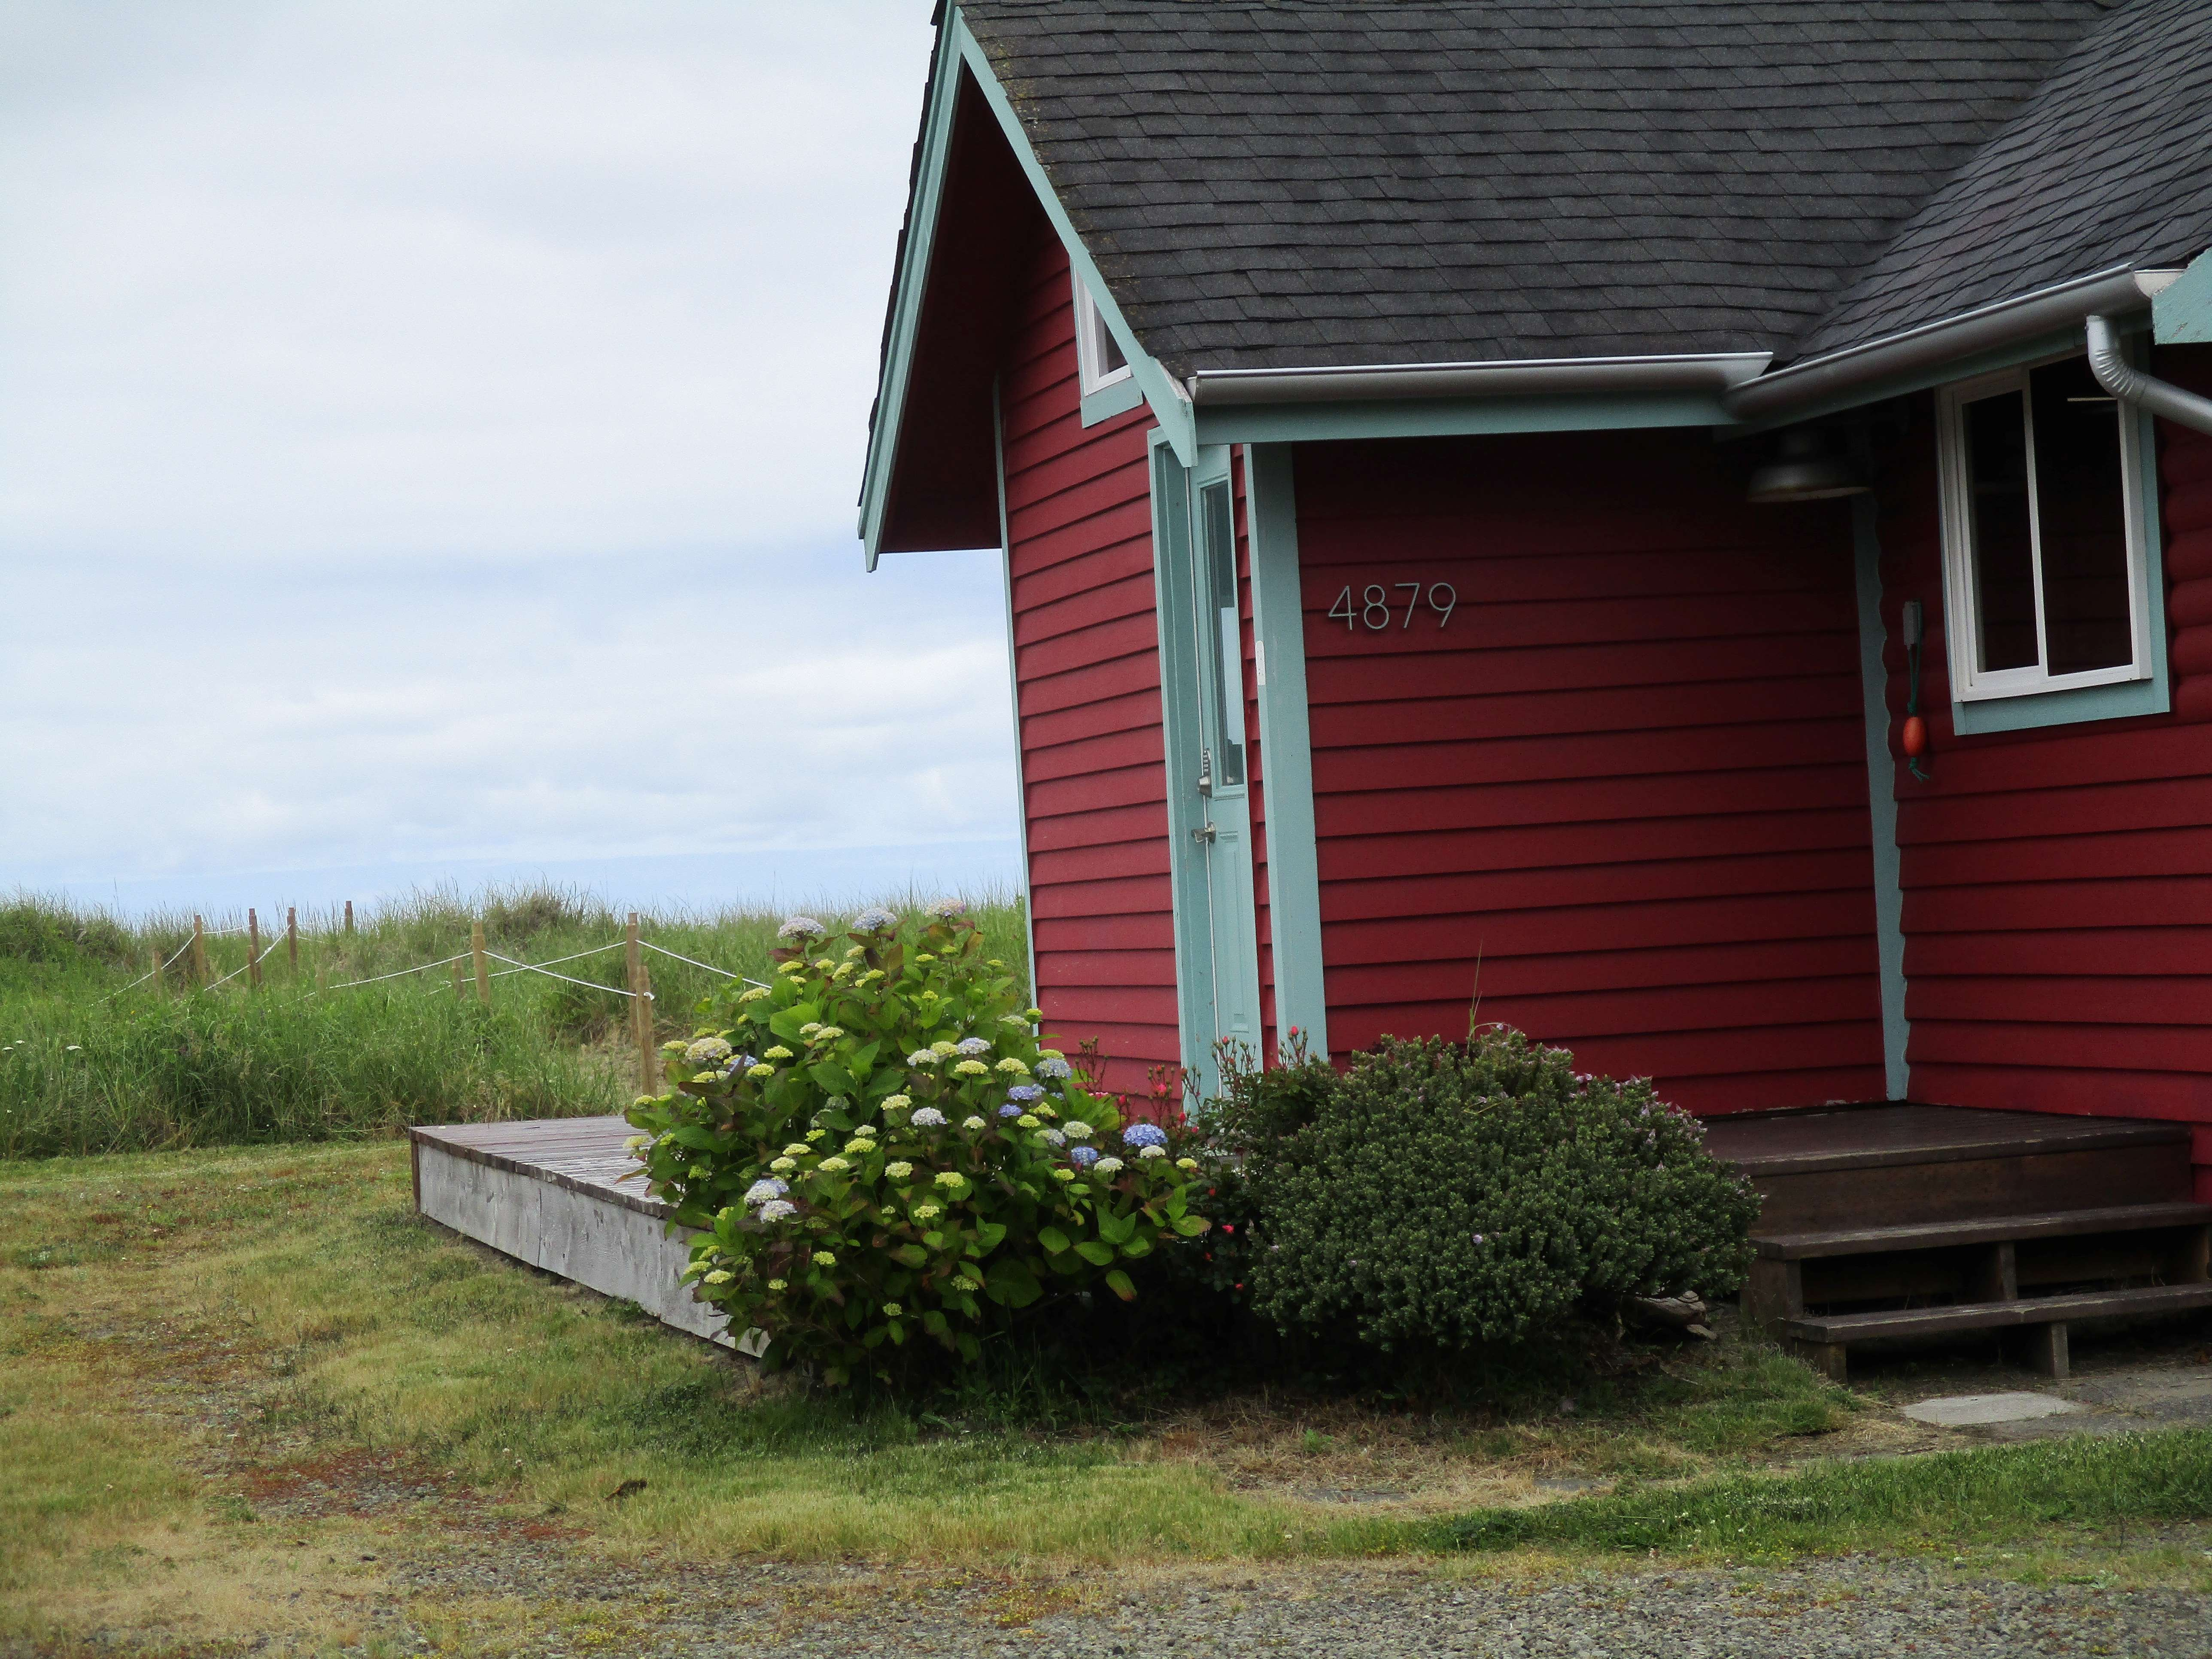 View from road past house to the ocean